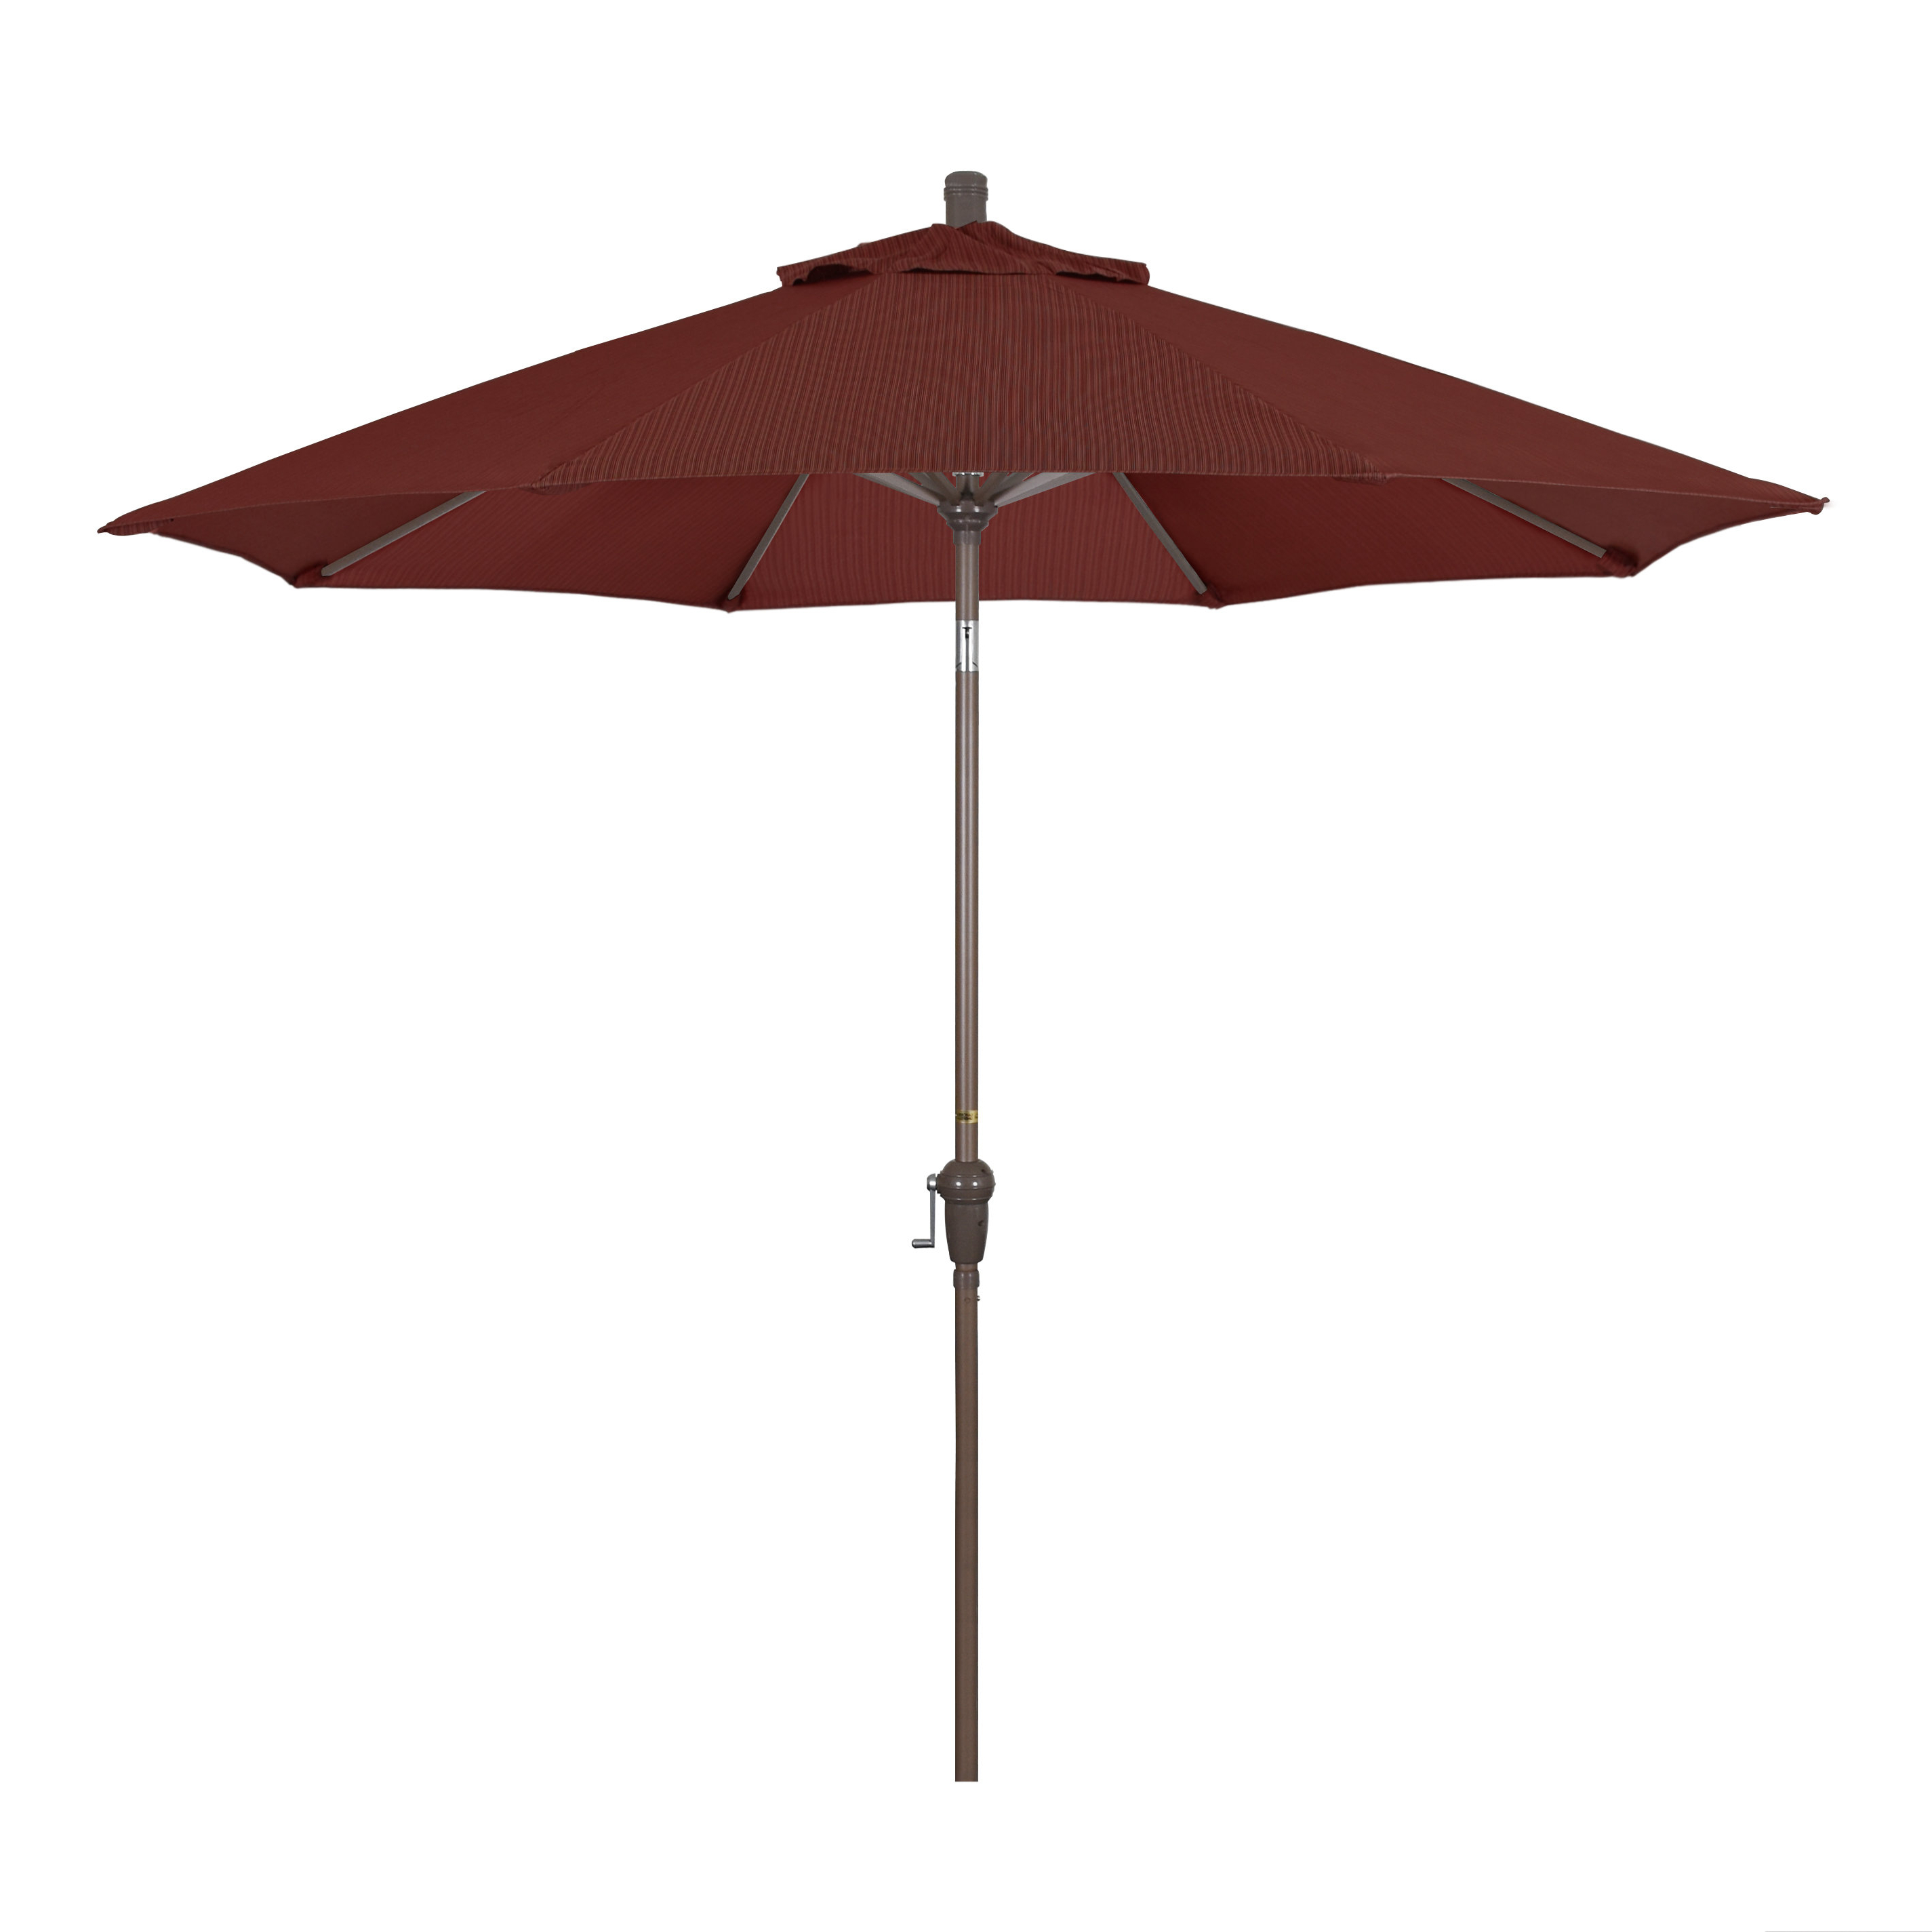 Mullaney 9' Market Umbrella Intended For Latest Mullaney Beachcrest Home Market Umbrellas (View 2 of 20)